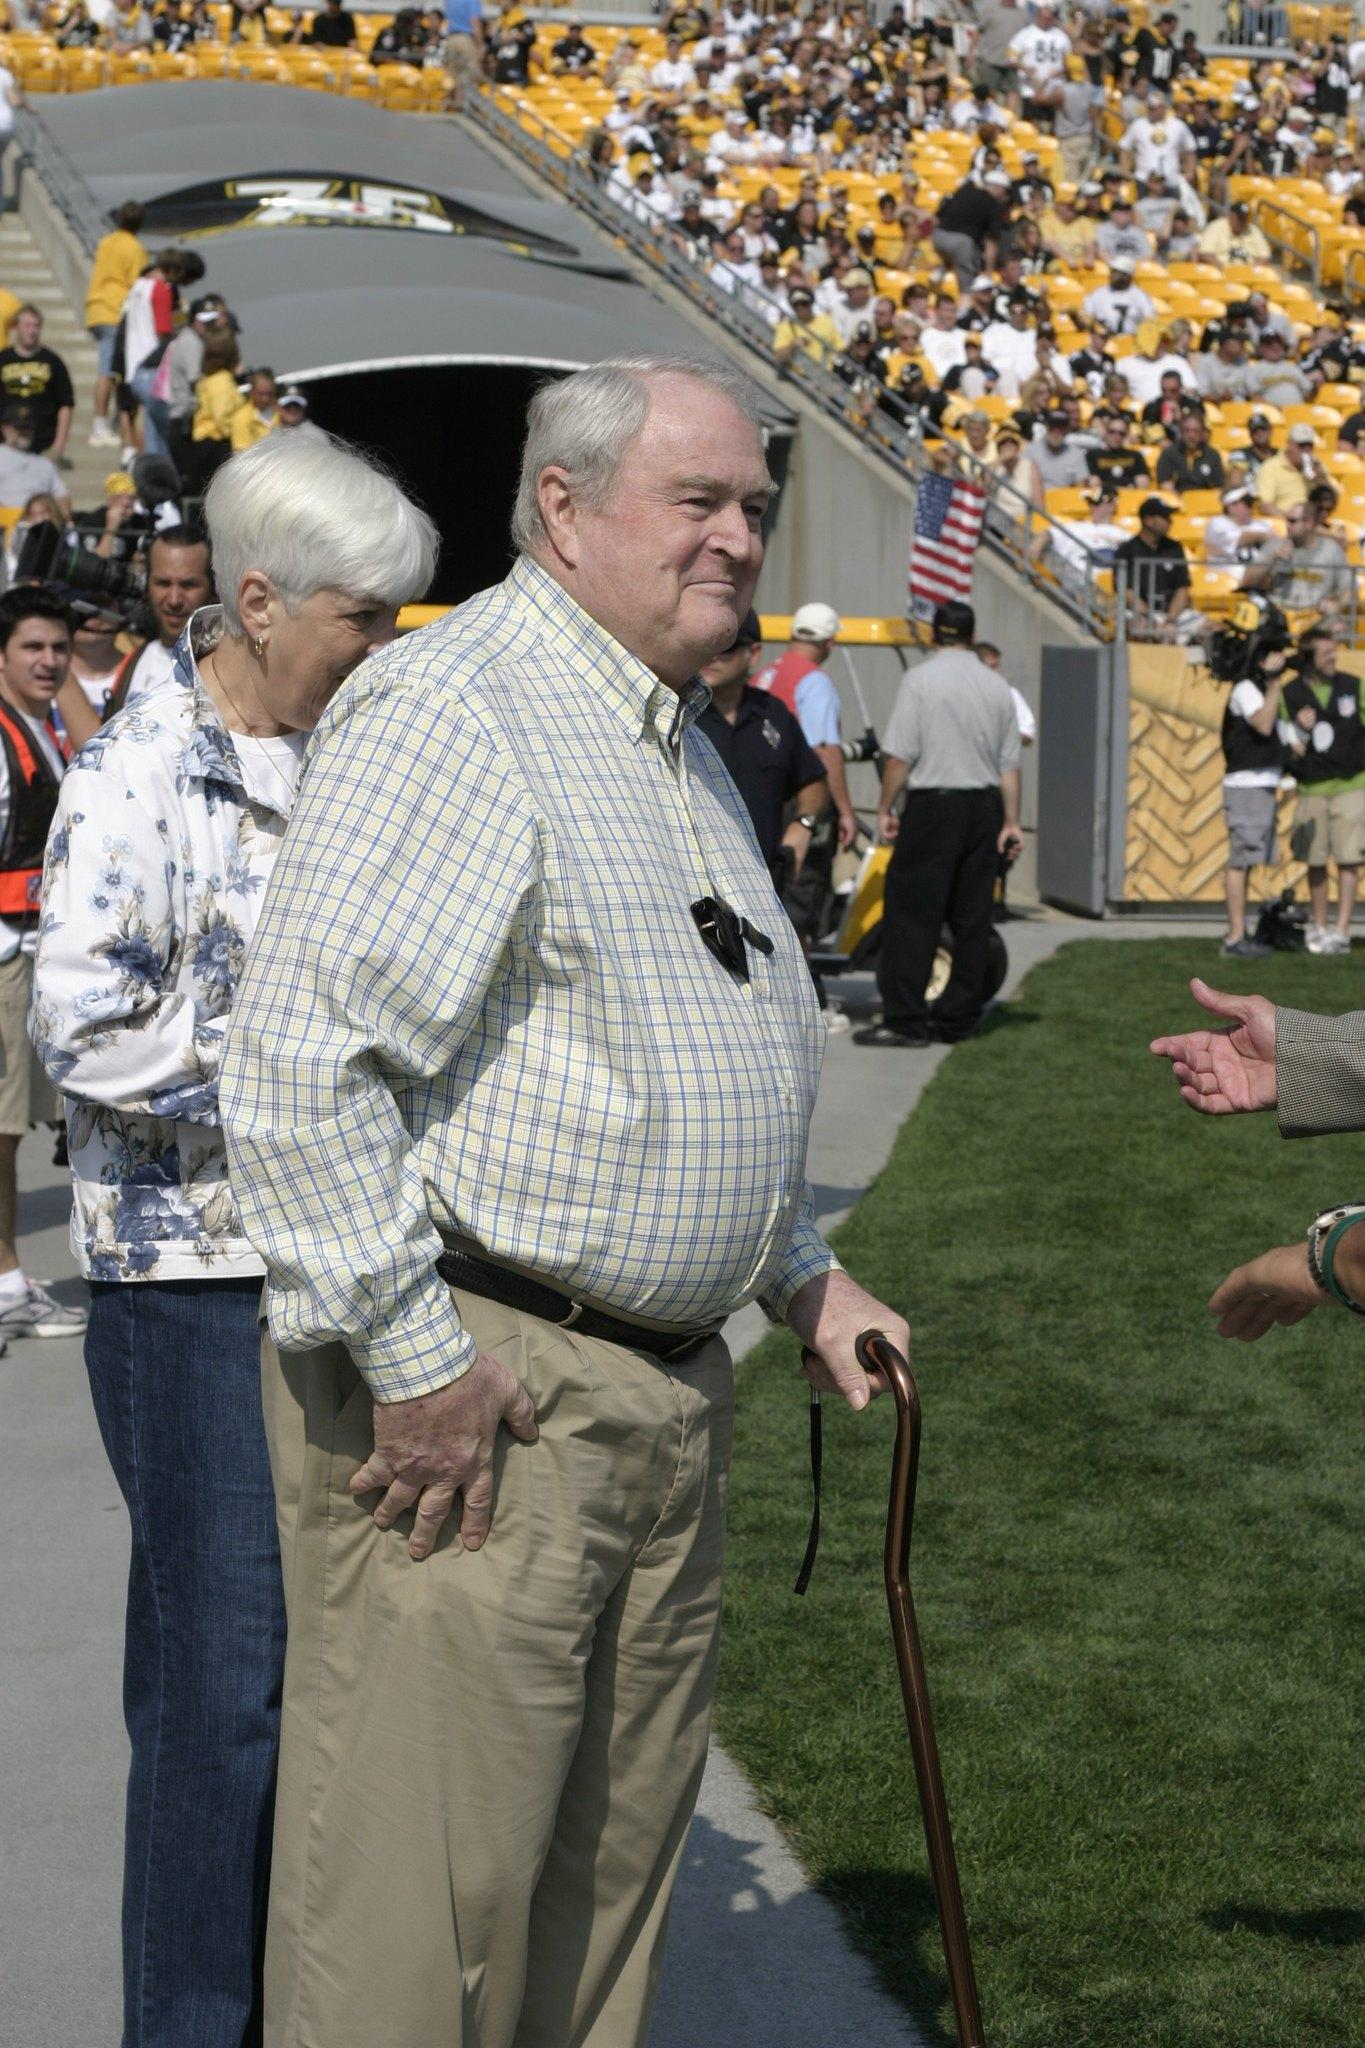 Chuck Noll, former head coach of the Pittsburgh Steelers, and his wife Marianne, look on from the sideline before a game between the Steelers and Seattle Seahawks at Heinz Field on October 7, 2007 in Pittsburgh, Pennsylvania.